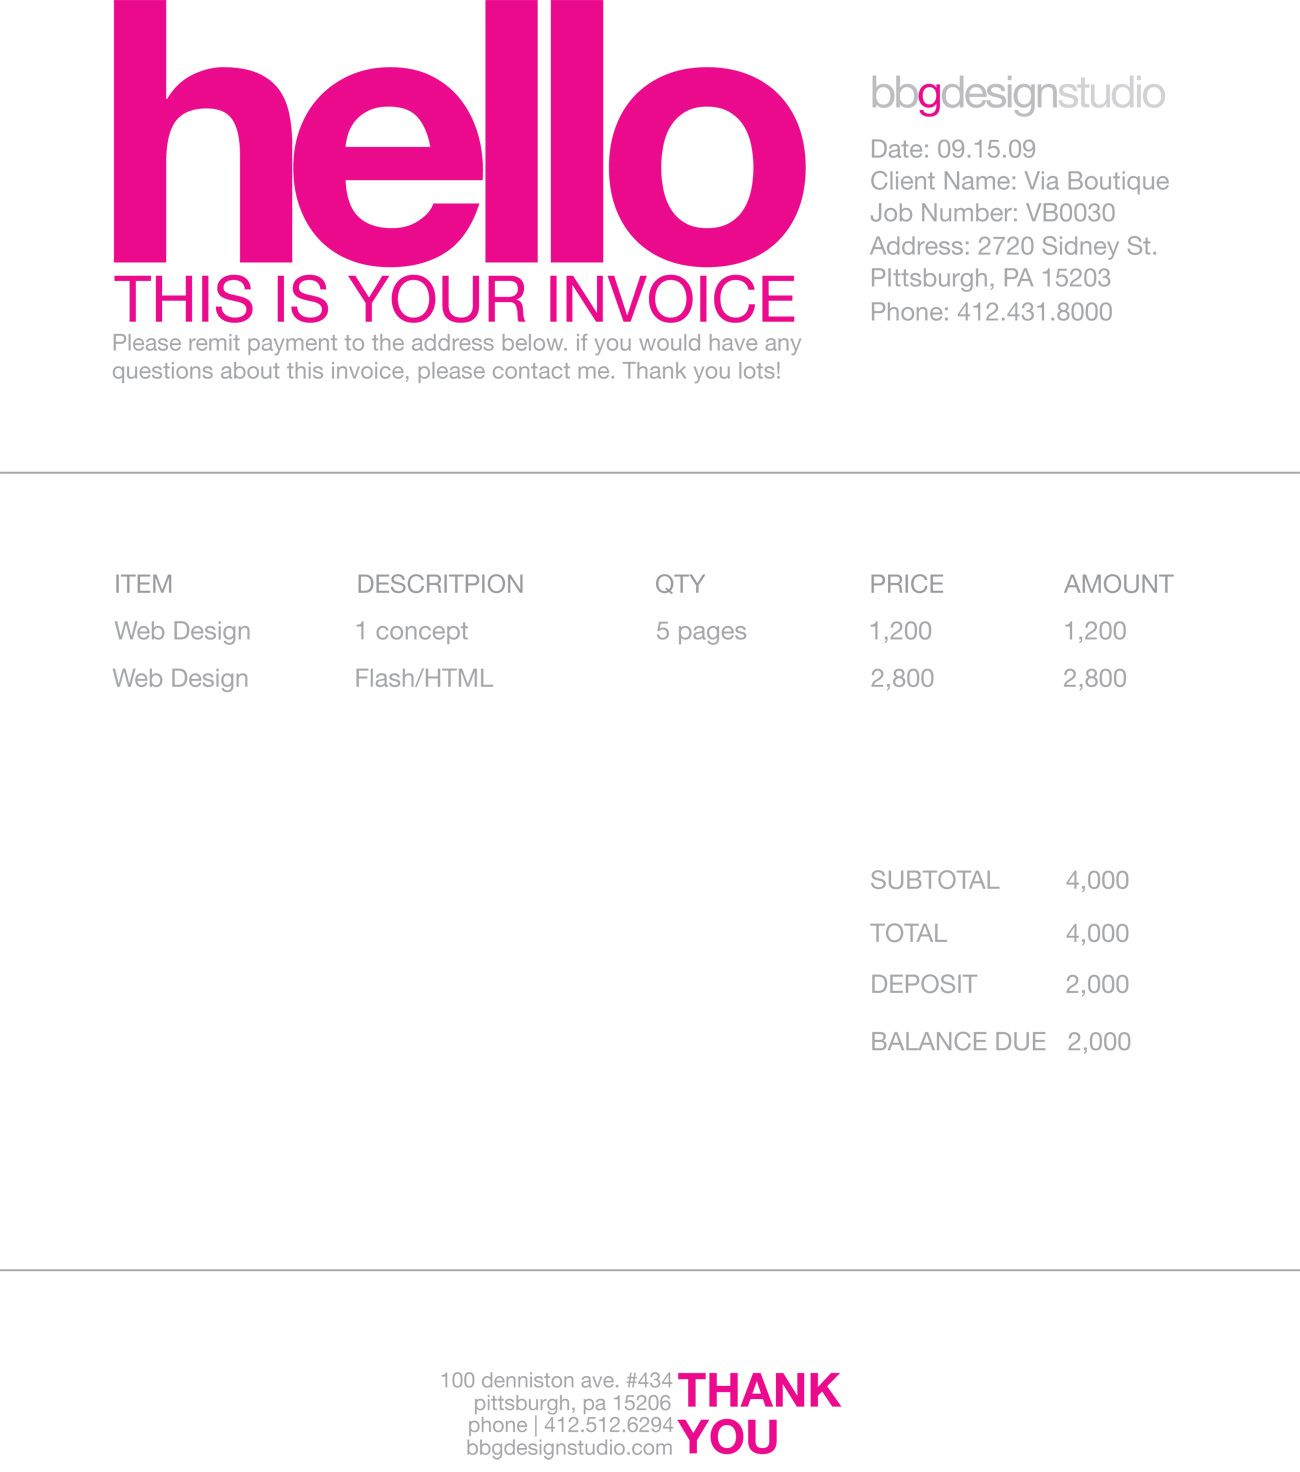 Gpwaus  Prepossessing  Images About Invoice Design On Pinterest With Excellent Sage Invoice Paper Besides Rental Invoice Template Free Furthermore Custom Invoice Software With Attractive Invoice No Gst Also Excel Invoice Template With Database In Addition Invoice Processing System And Invoice Copy Sample As Well As Sample Invoice For Freelance Work Additionally Creative Invoice Designs From Pinterestcom With Gpwaus  Excellent  Images About Invoice Design On Pinterest With Attractive Sage Invoice Paper Besides Rental Invoice Template Free Furthermore Custom Invoice Software And Prepossessing Invoice No Gst Also Excel Invoice Template With Database In Addition Invoice Processing System From Pinterestcom